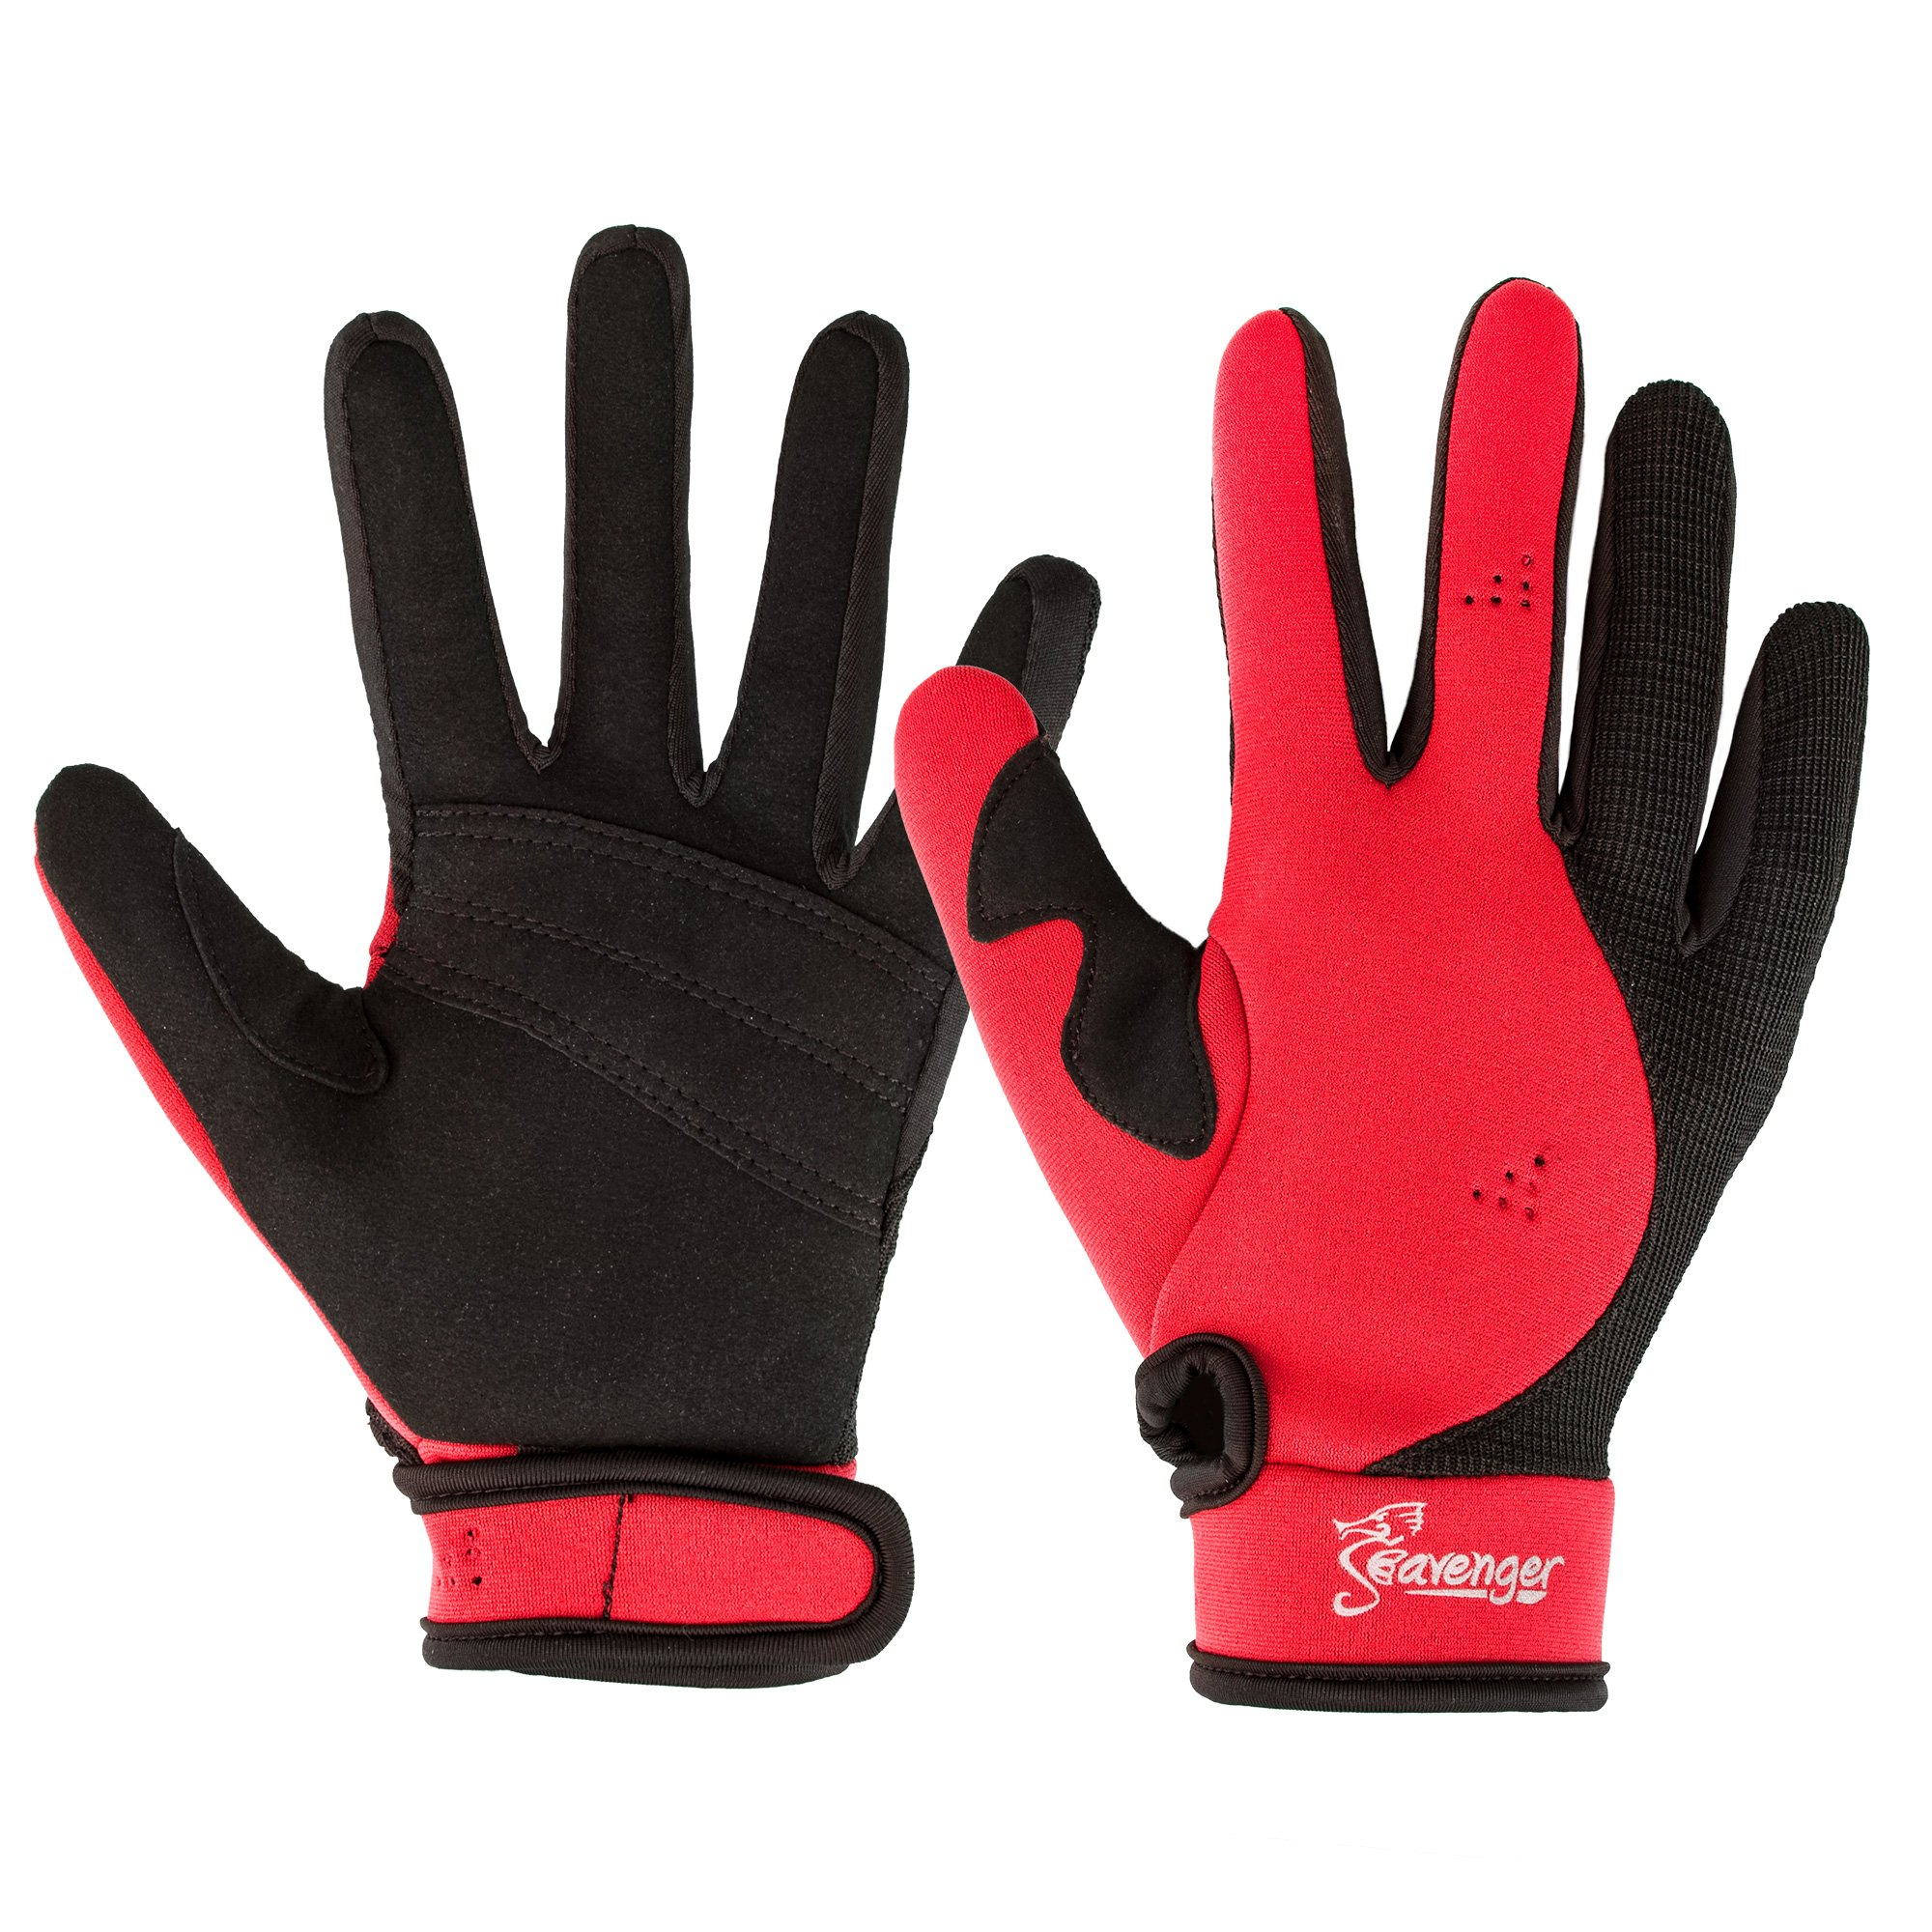 Seavenger Abyss Dive Gloves | 1.5mm Neoprene Mesh | Scuba Diving, Wakeboarding, Spearfishing (Red, 2X-Small) by Seavenger